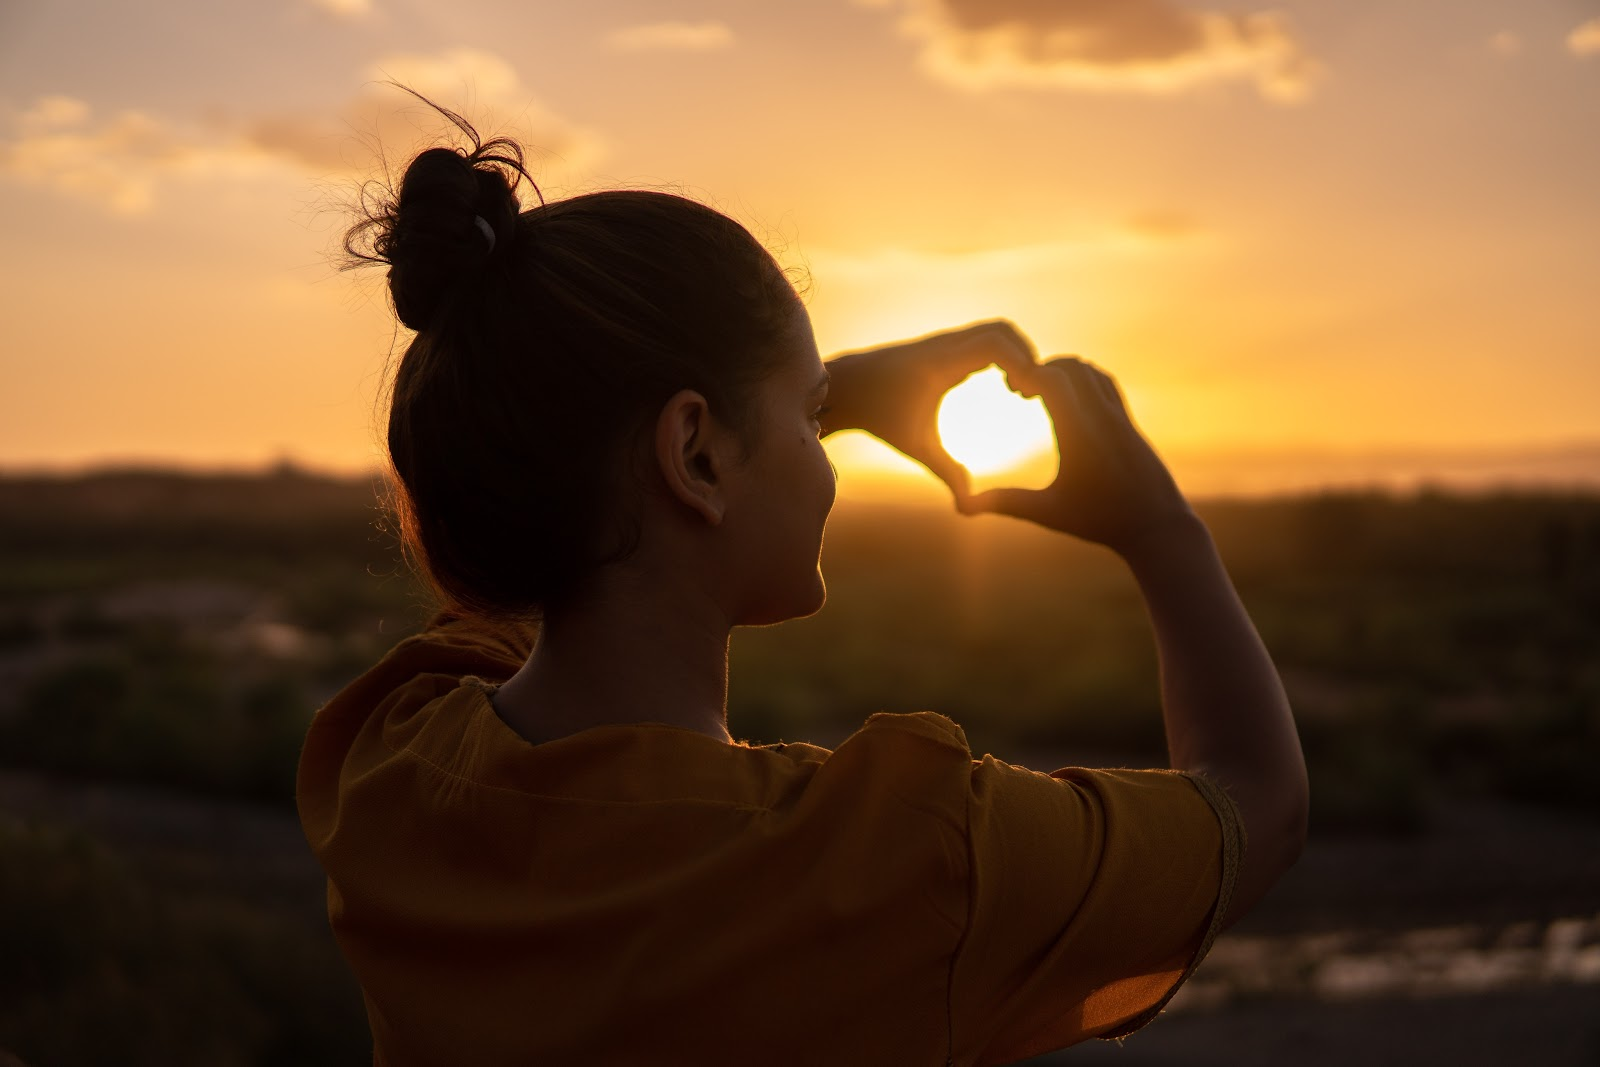 A girl looking at the sunrise in a positive mood